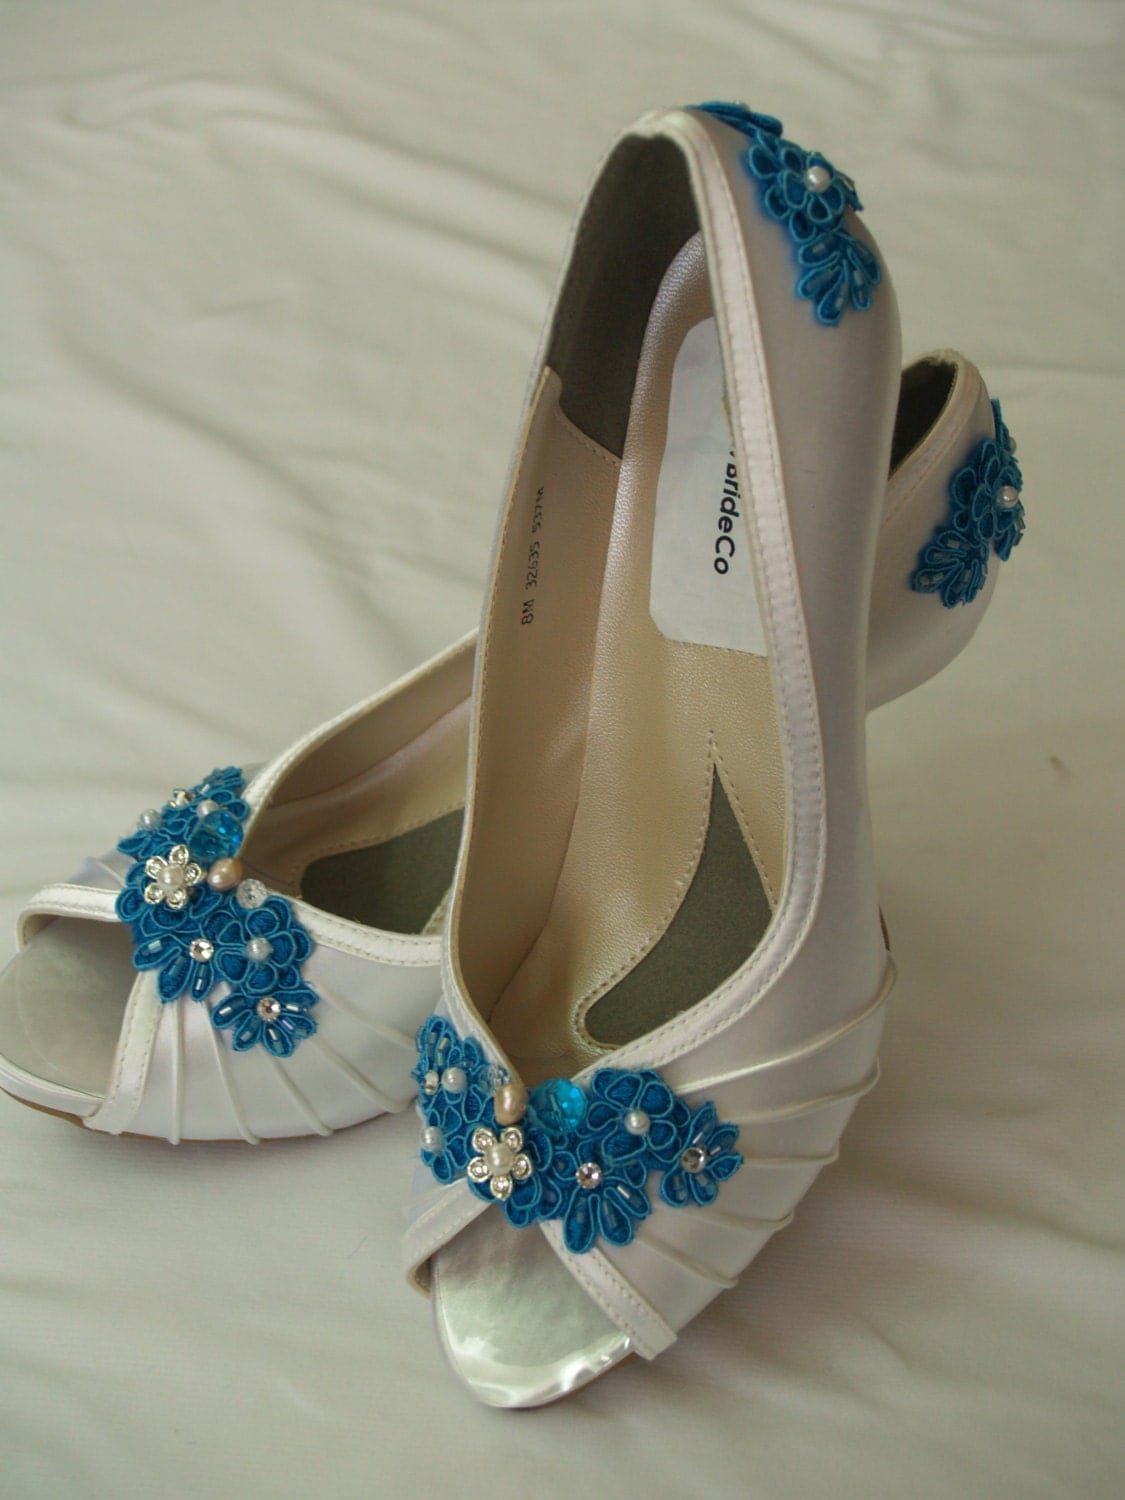 Brides Shoes Turquoise Blue Lace Applique Wedding By NewBrideCo